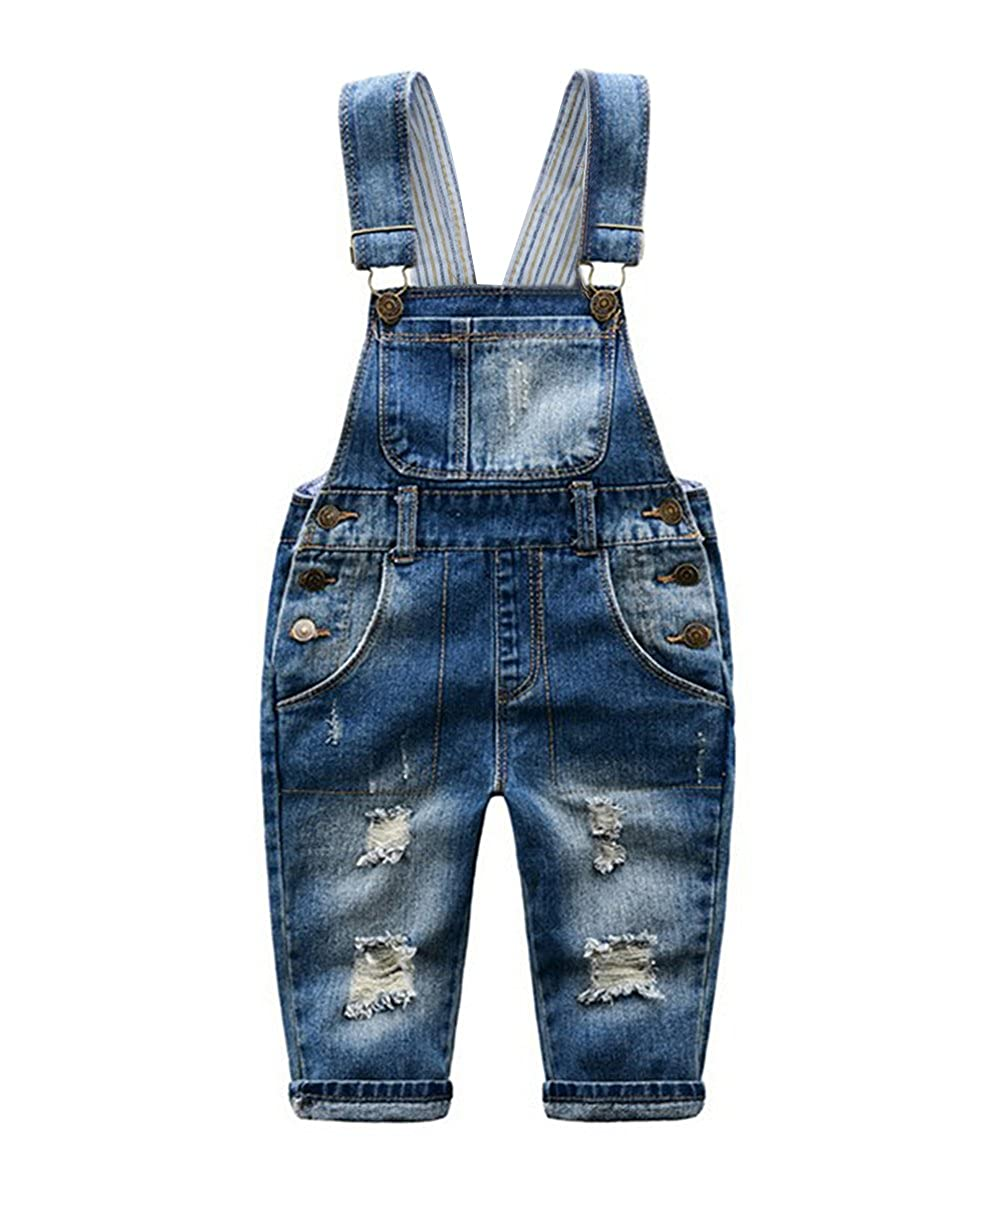 Tortor 1bacha Baby Little Boys' Distressed Ripped Denim Bib Overall ZLGPDBD